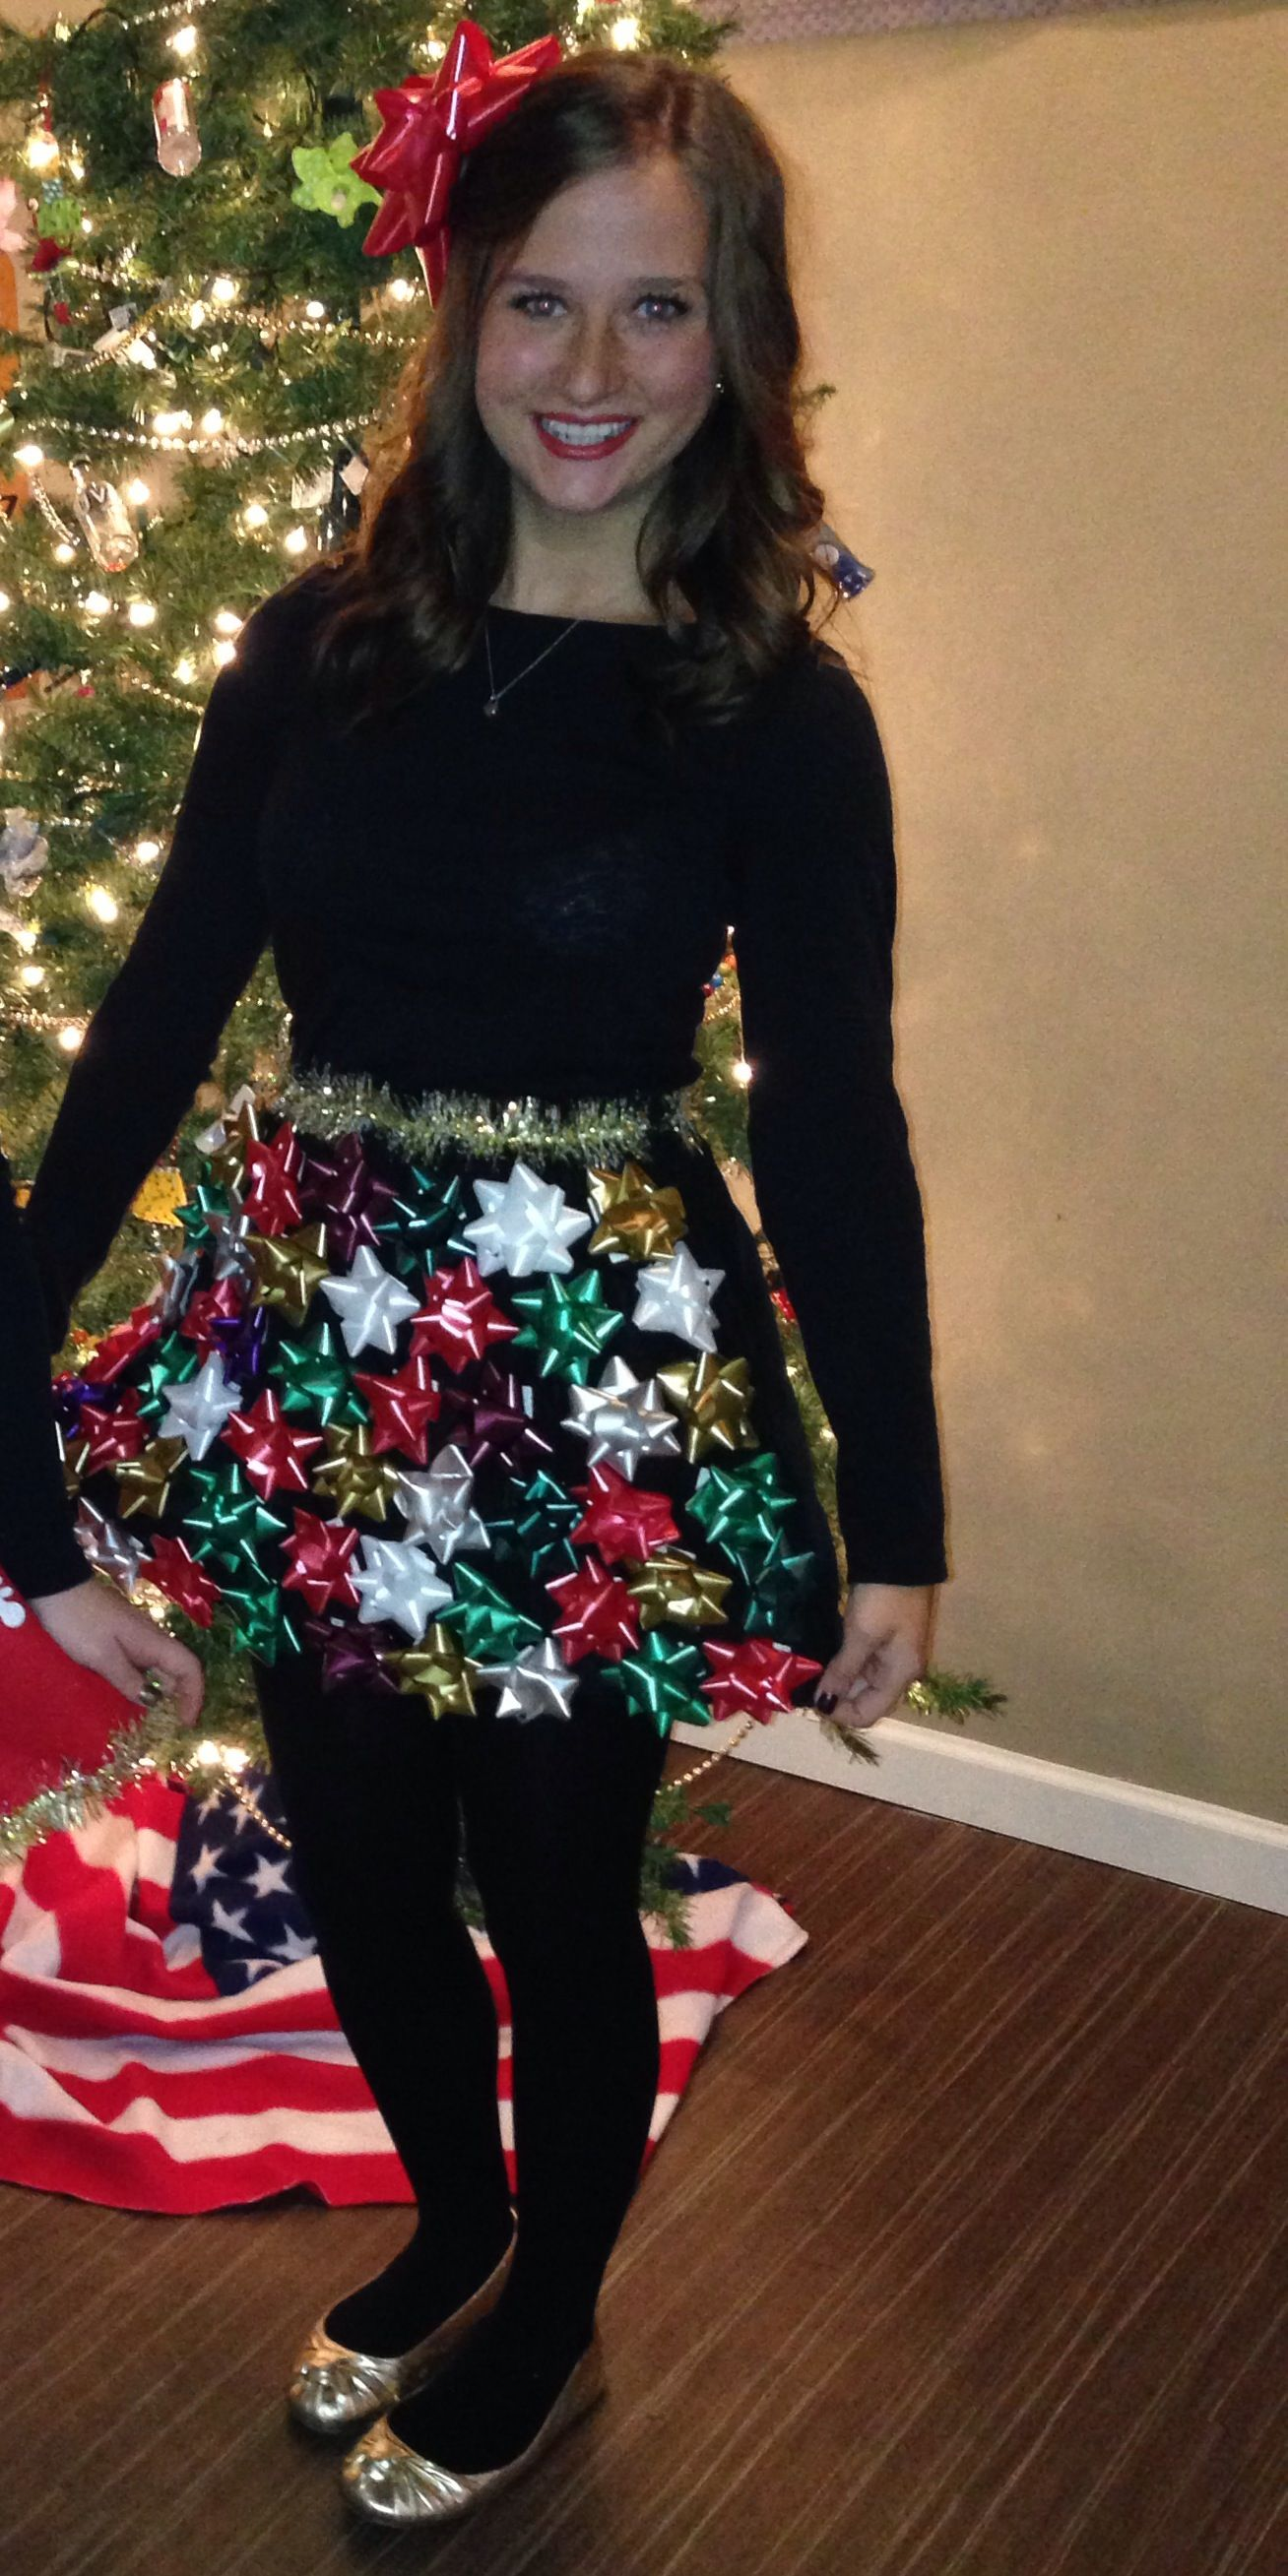 Ugly Christmas Skirt Ideas.Tacky Christmas Idea Holidays Tacky Christmas Party